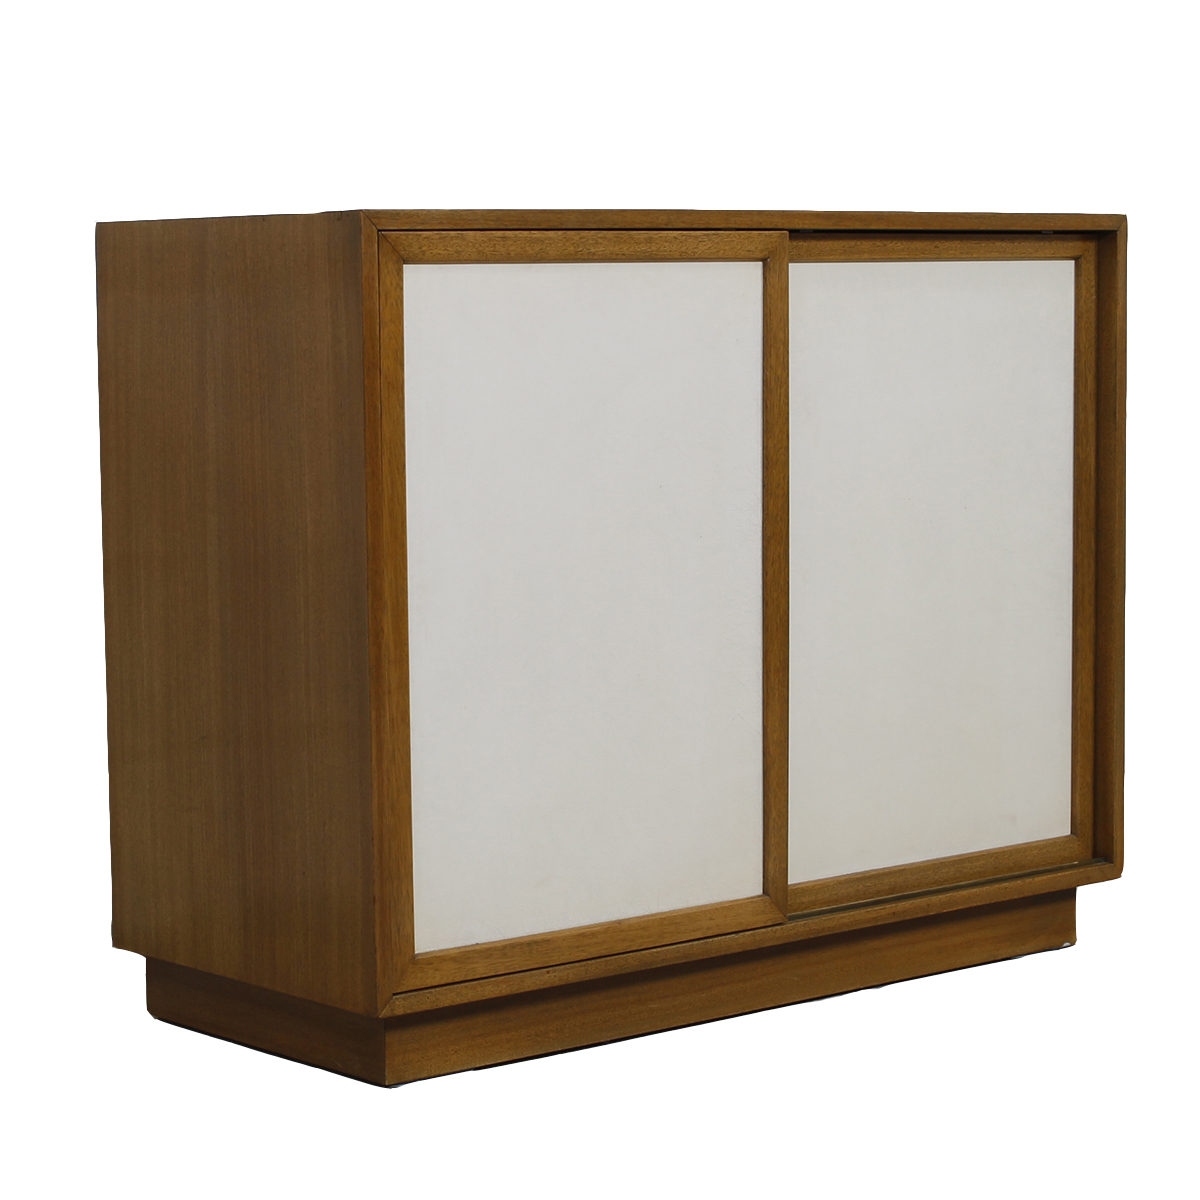 Harvey Probber Compact Cabinet in Bleached Mahogany with White Leather Doors